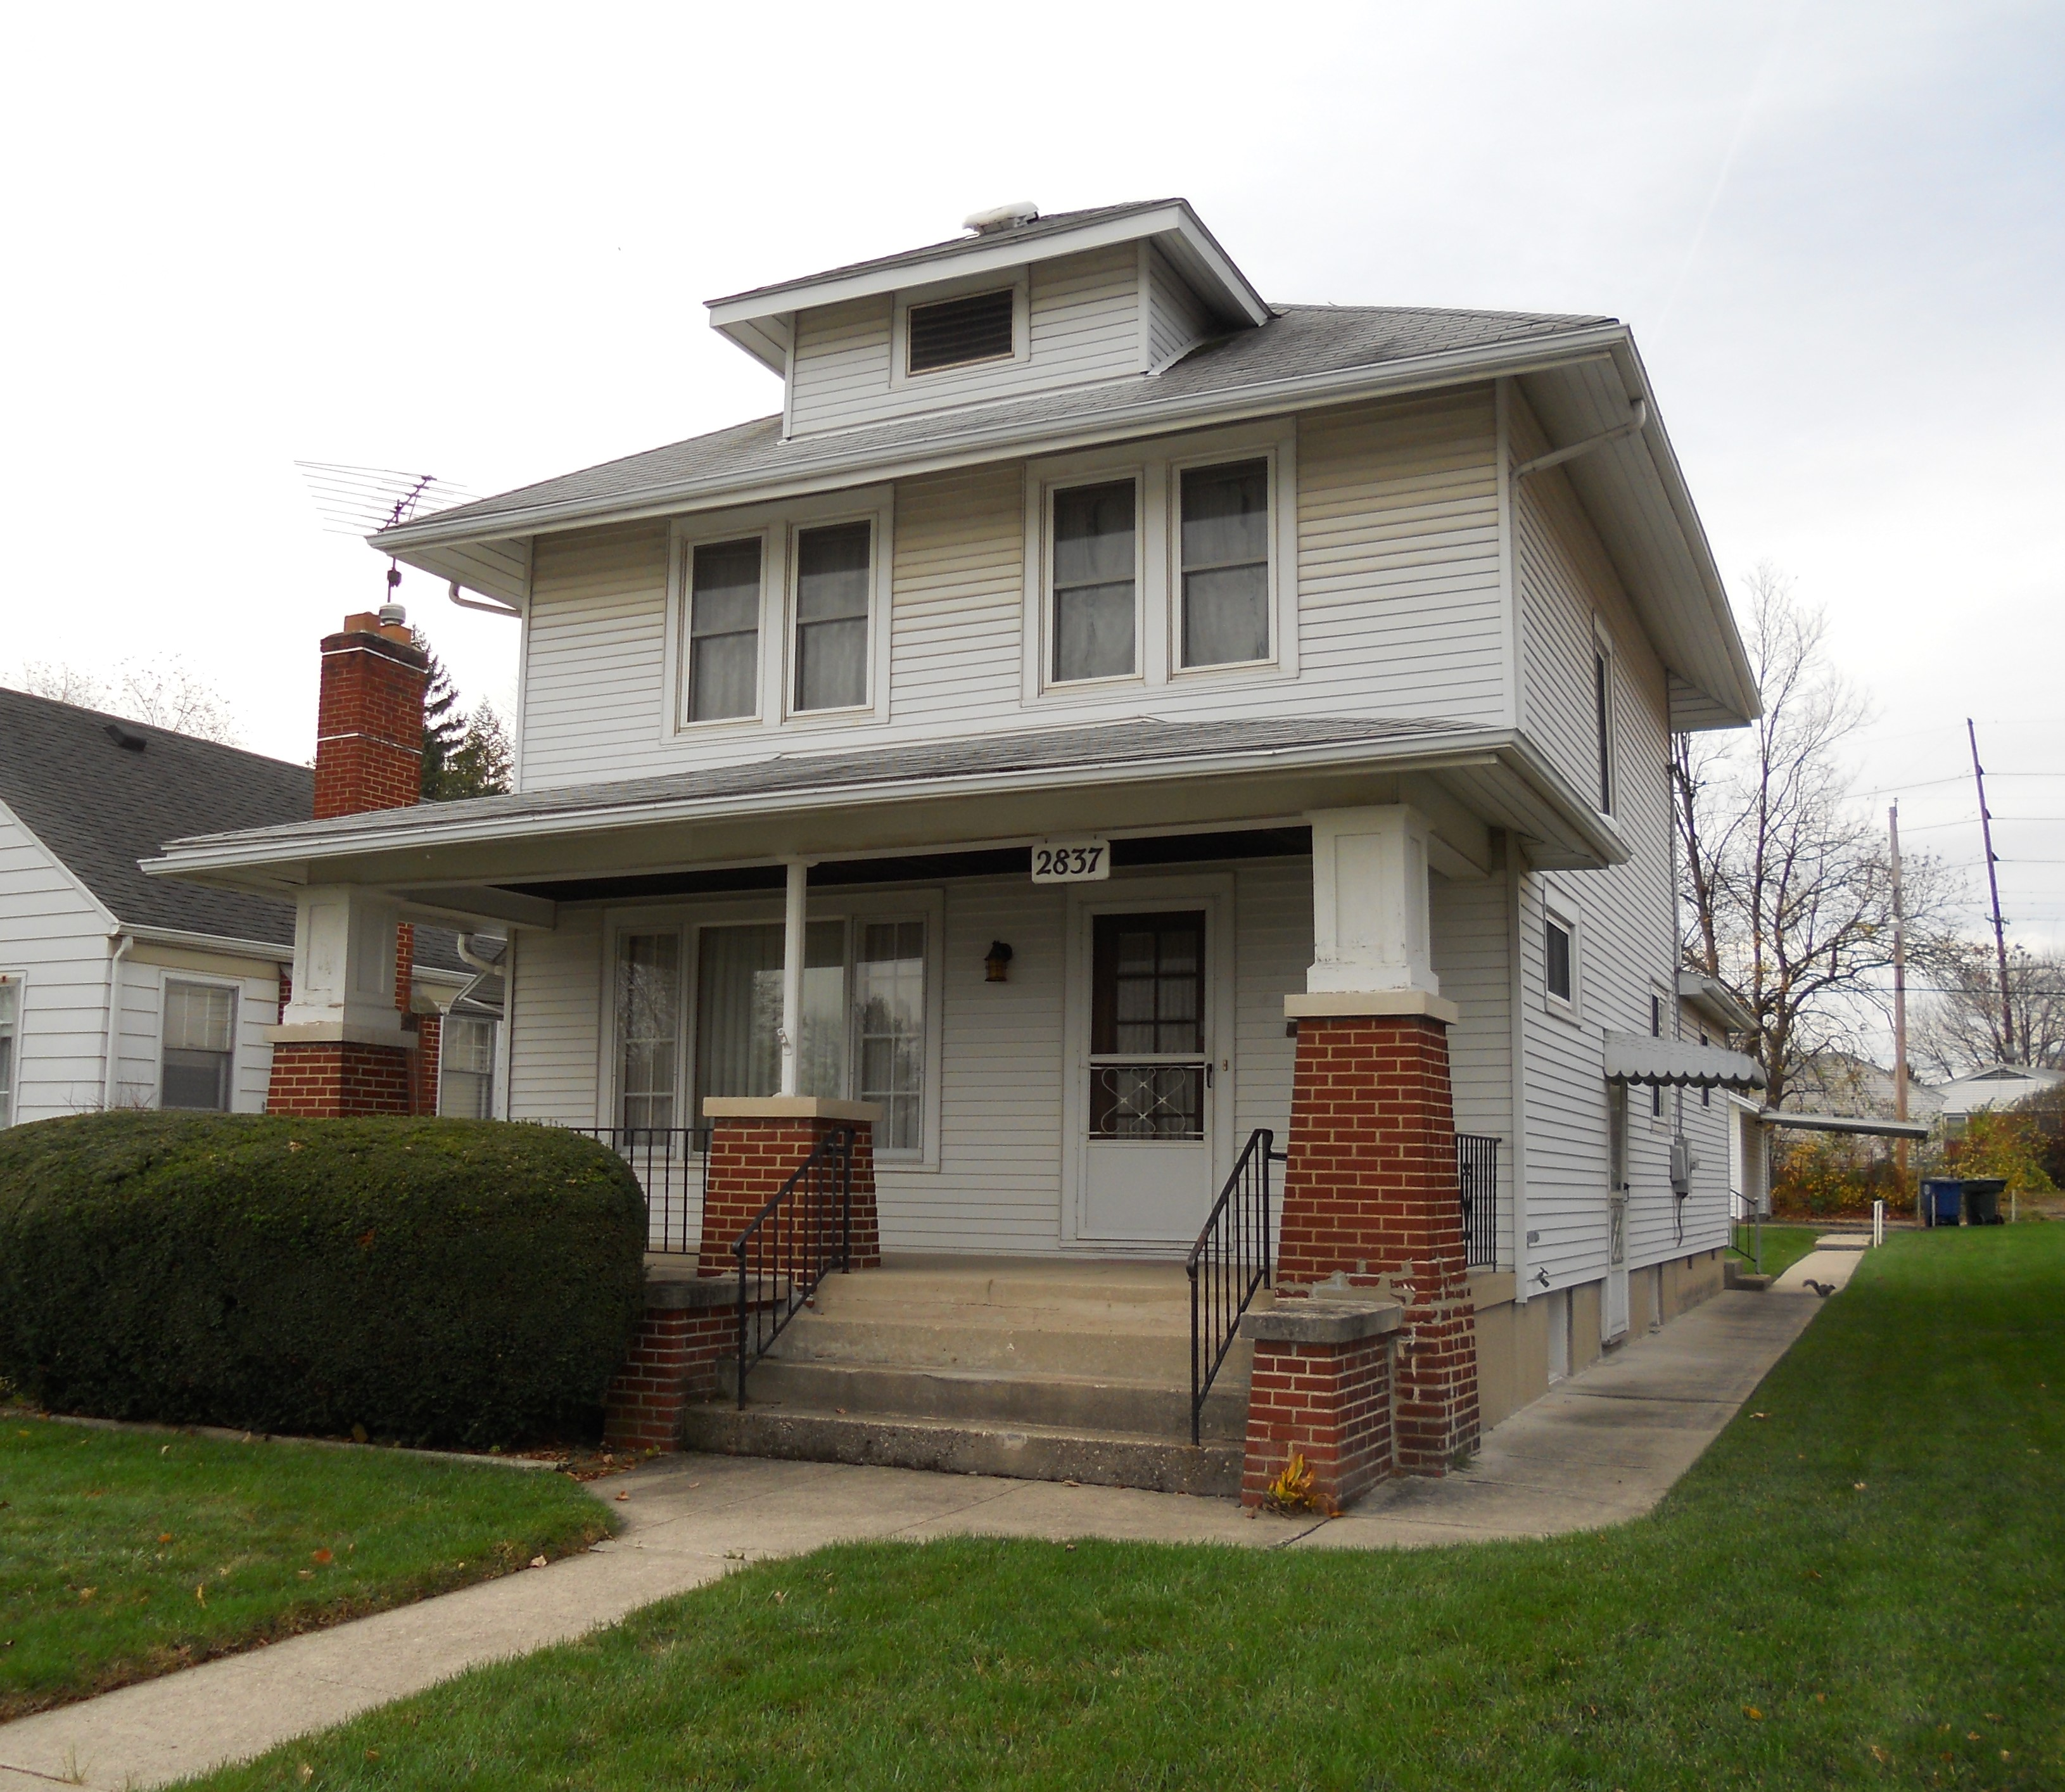 A sears fullerton in dayton sears houses in ohio House kits ohio